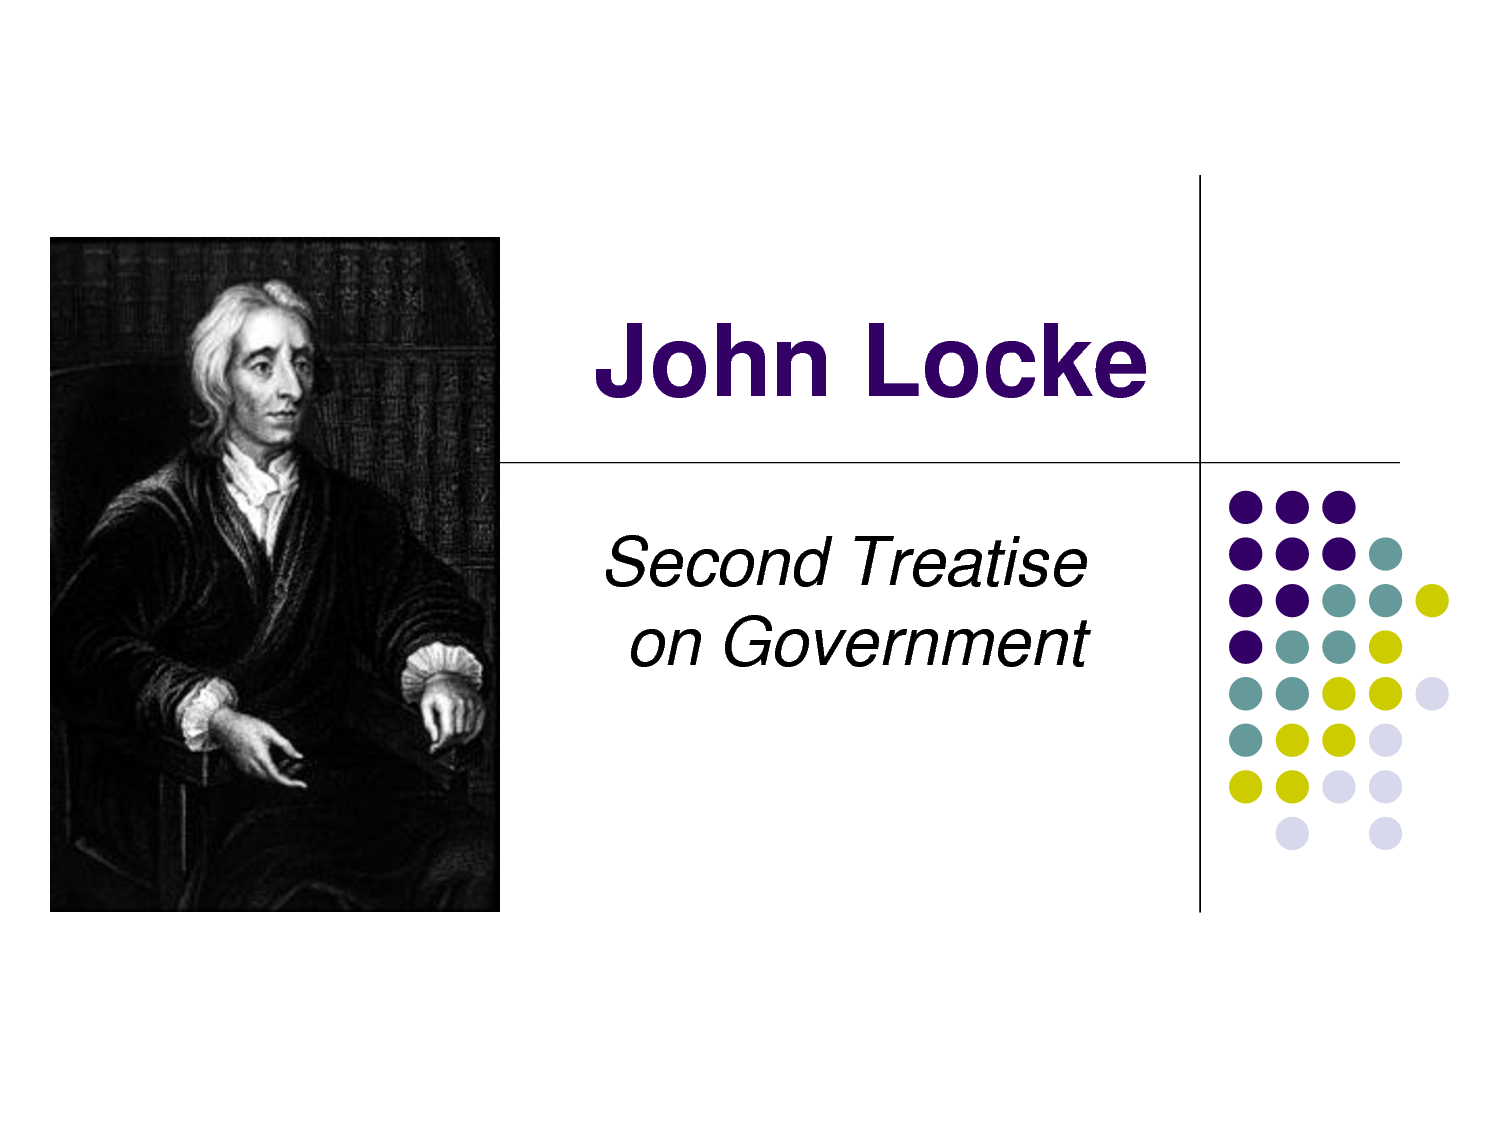 social contract theory of john locke Locke, like hobbes before him, frames modern society through explanation of a social contract and progression away from a (fictional) state of nature.